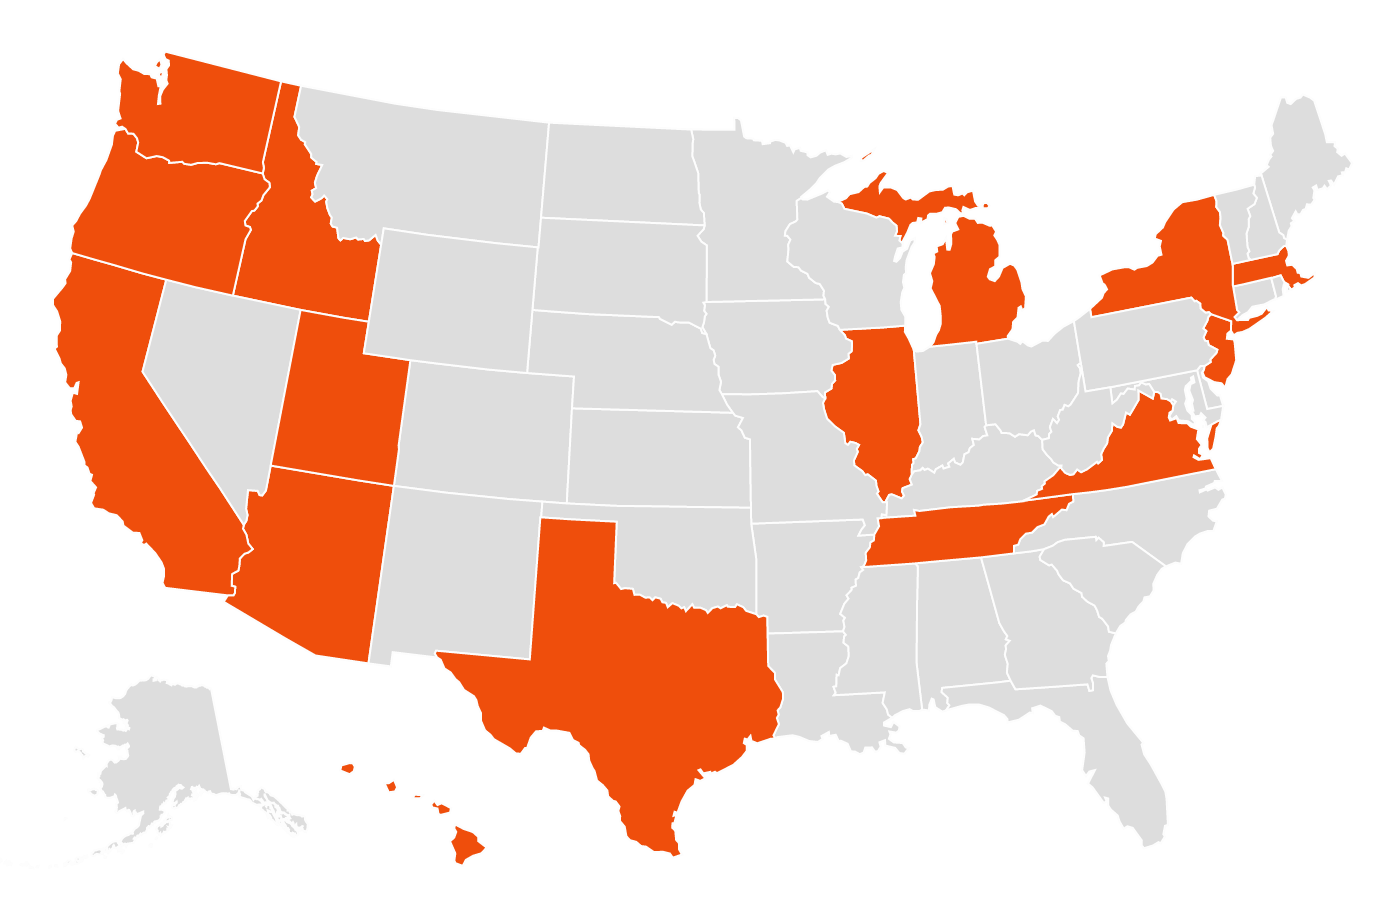 States with YC founder opens in the first 24 hours